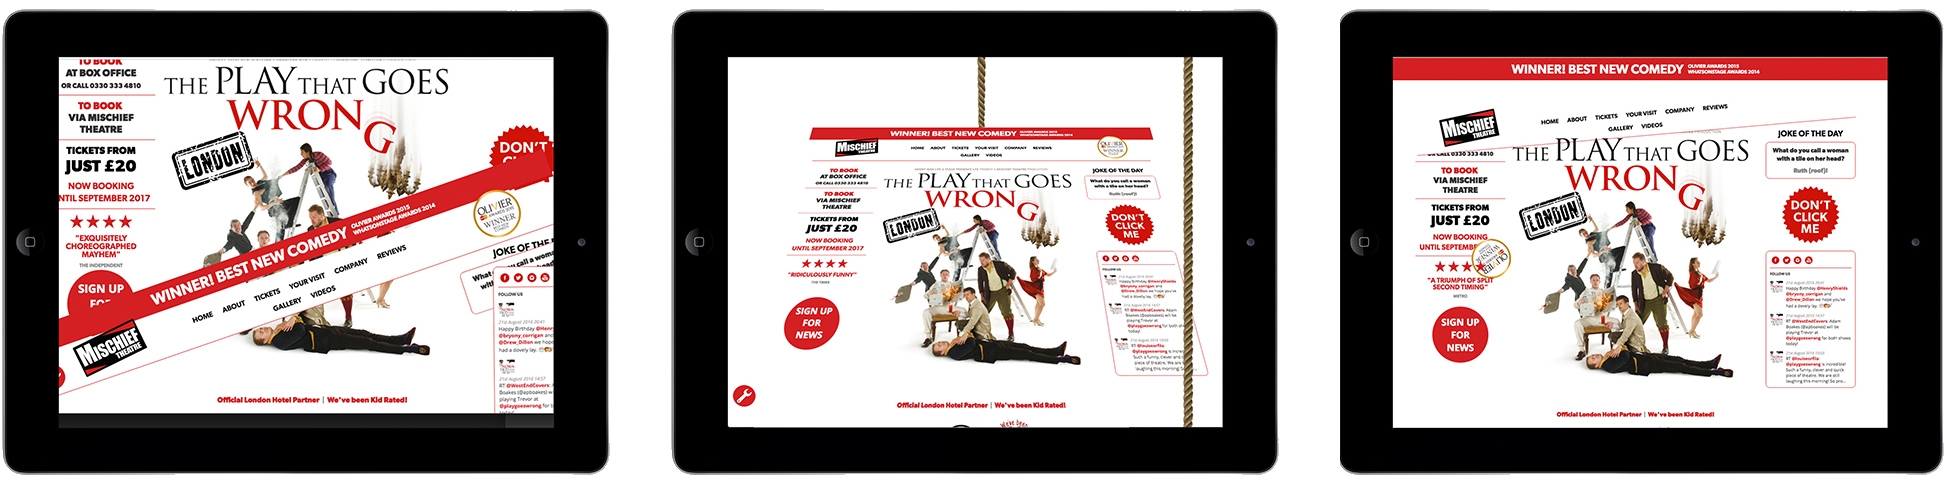 Mischief Theatre's Play That Goes Wrong website on Apple ipad